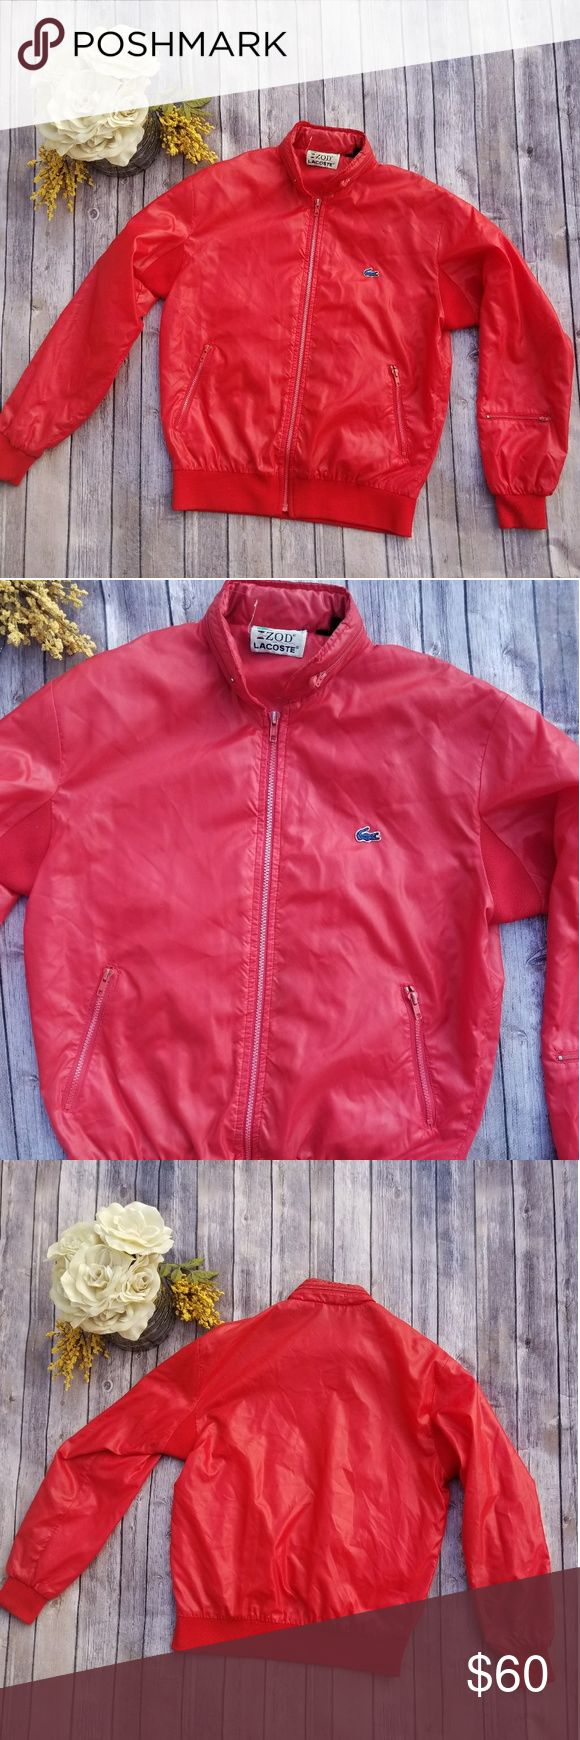 🎉Vintage Izod Lacoste Red Bomber Jacket🎉 Size M Vintage Izod Lacoste Bomber Jacket Red Alligator blue Zippers show signs of wear No tears  Photo 8 shows small stain (can be removed) Amazing vintage piece Lacoste Jackets & Coats